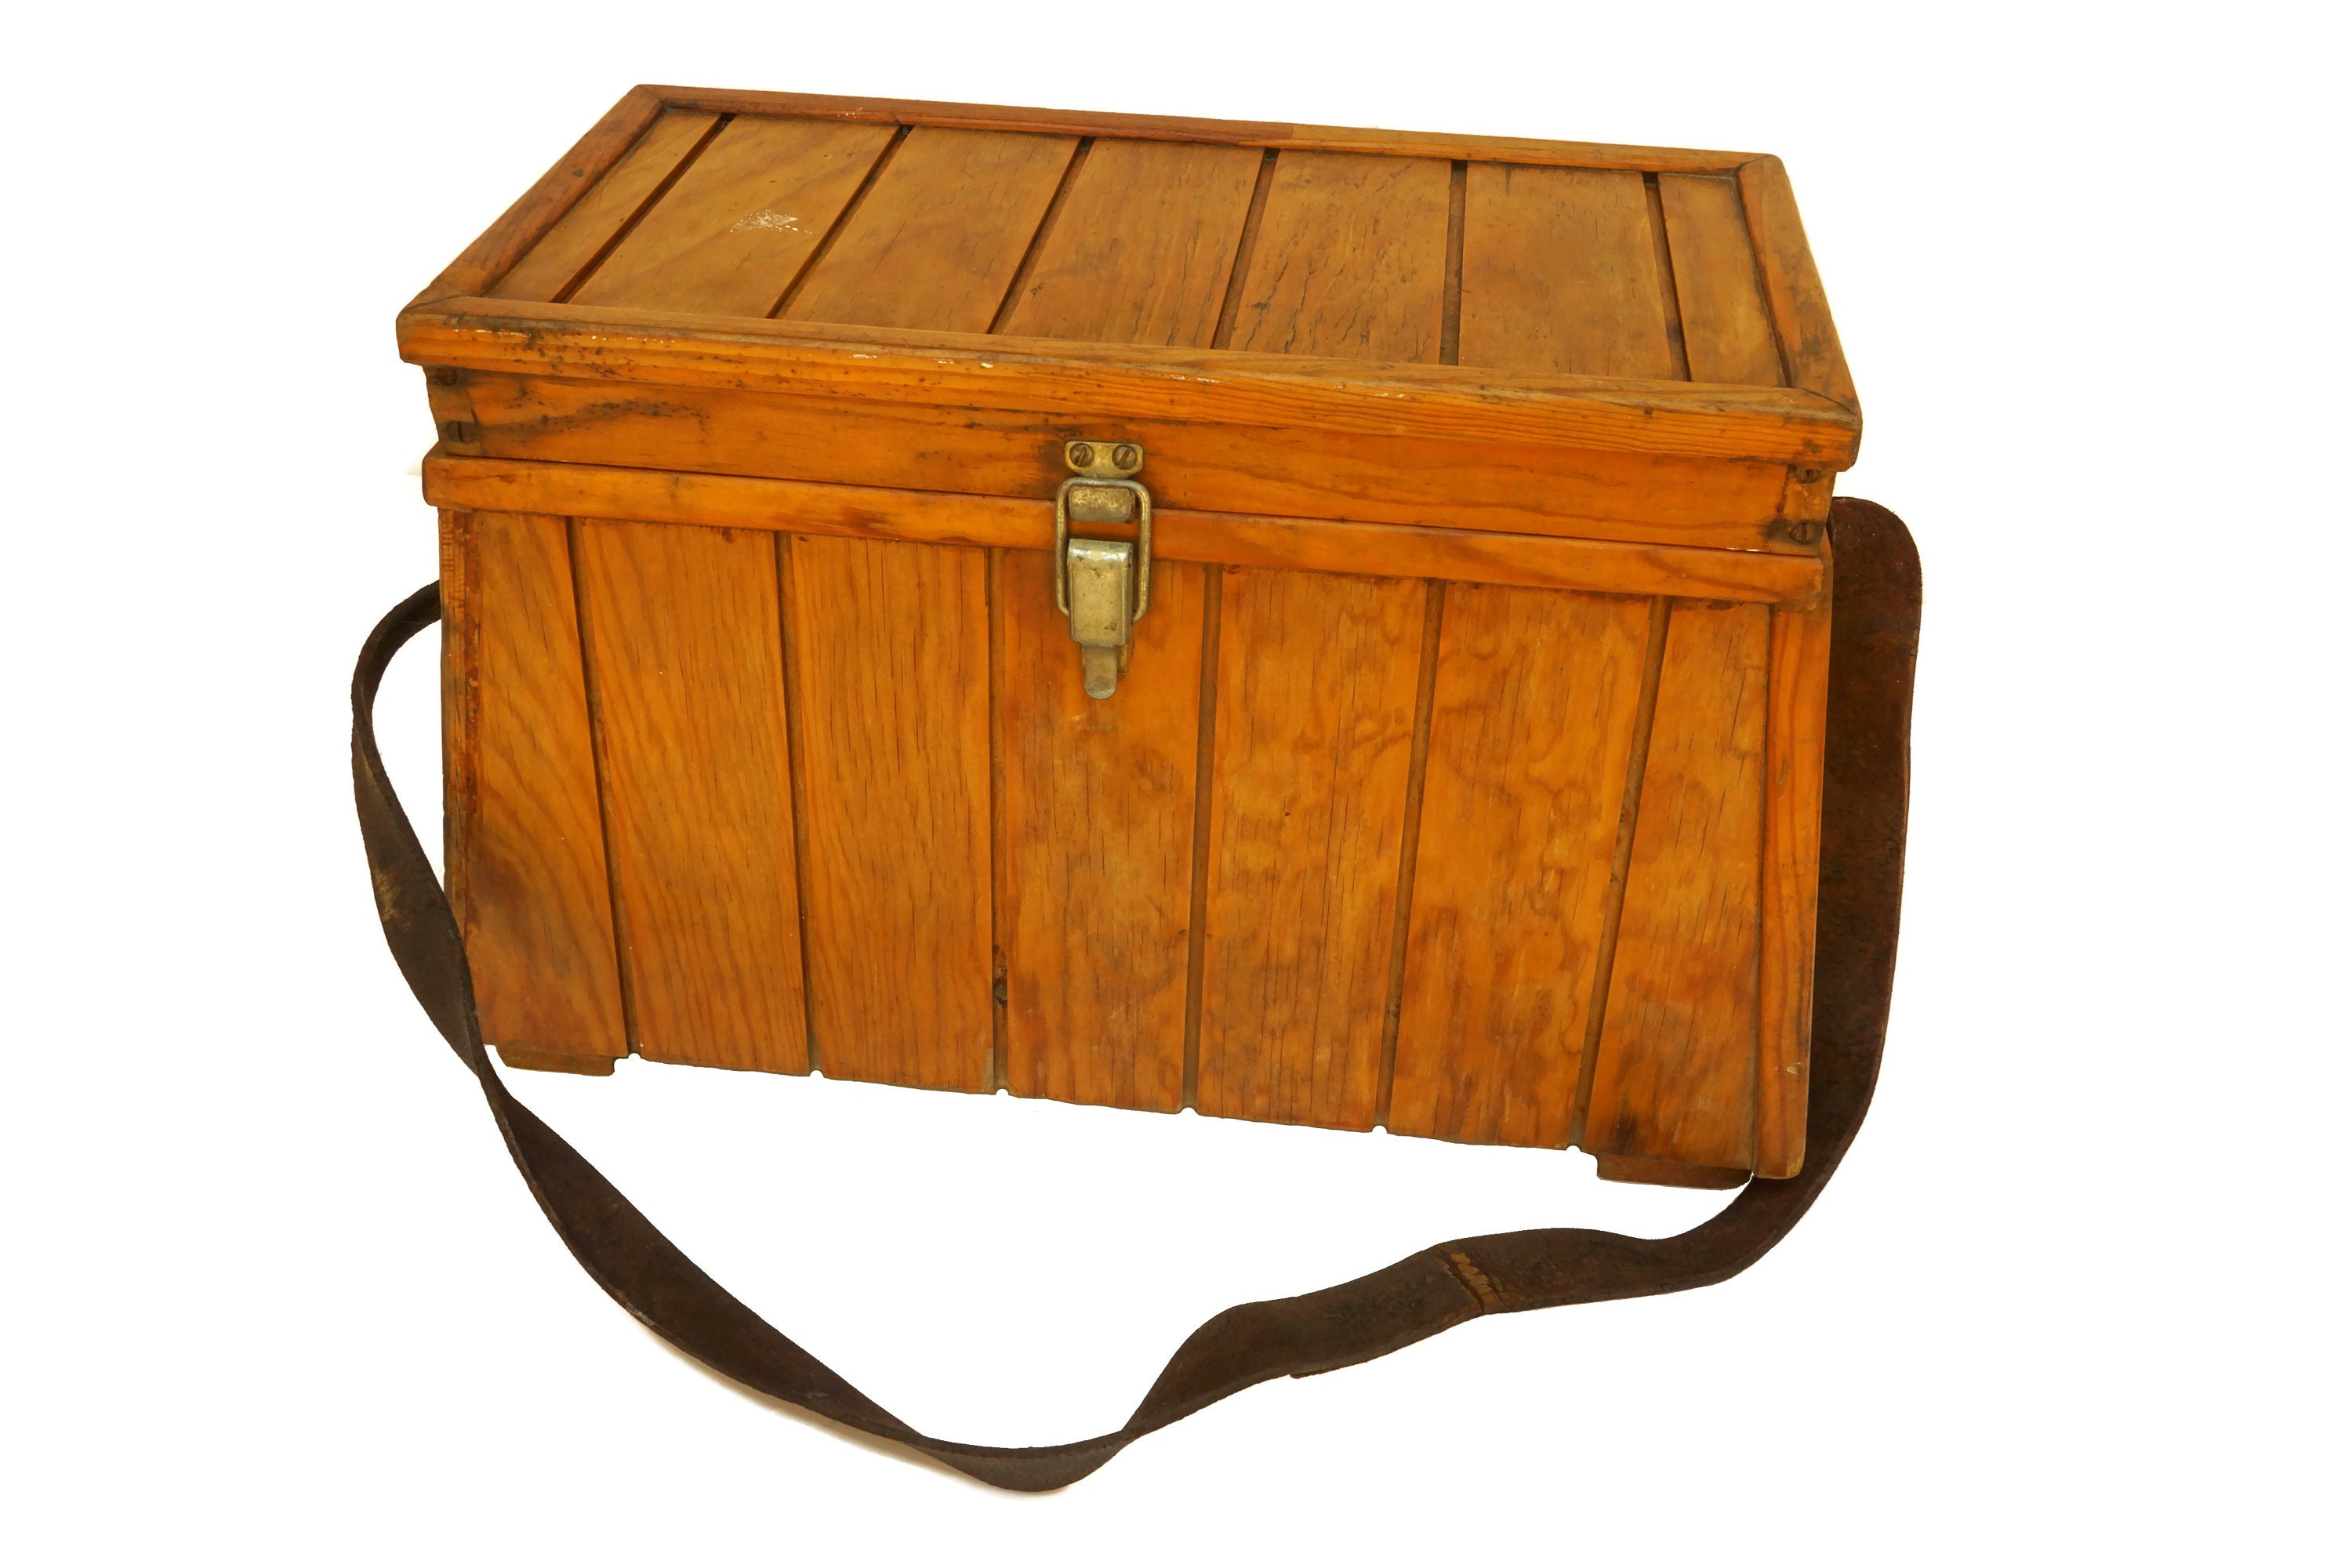 Miraculous Wooden Fishing Tackle Box Stool Seat Vintage French Caraccident5 Cool Chair Designs And Ideas Caraccident5Info